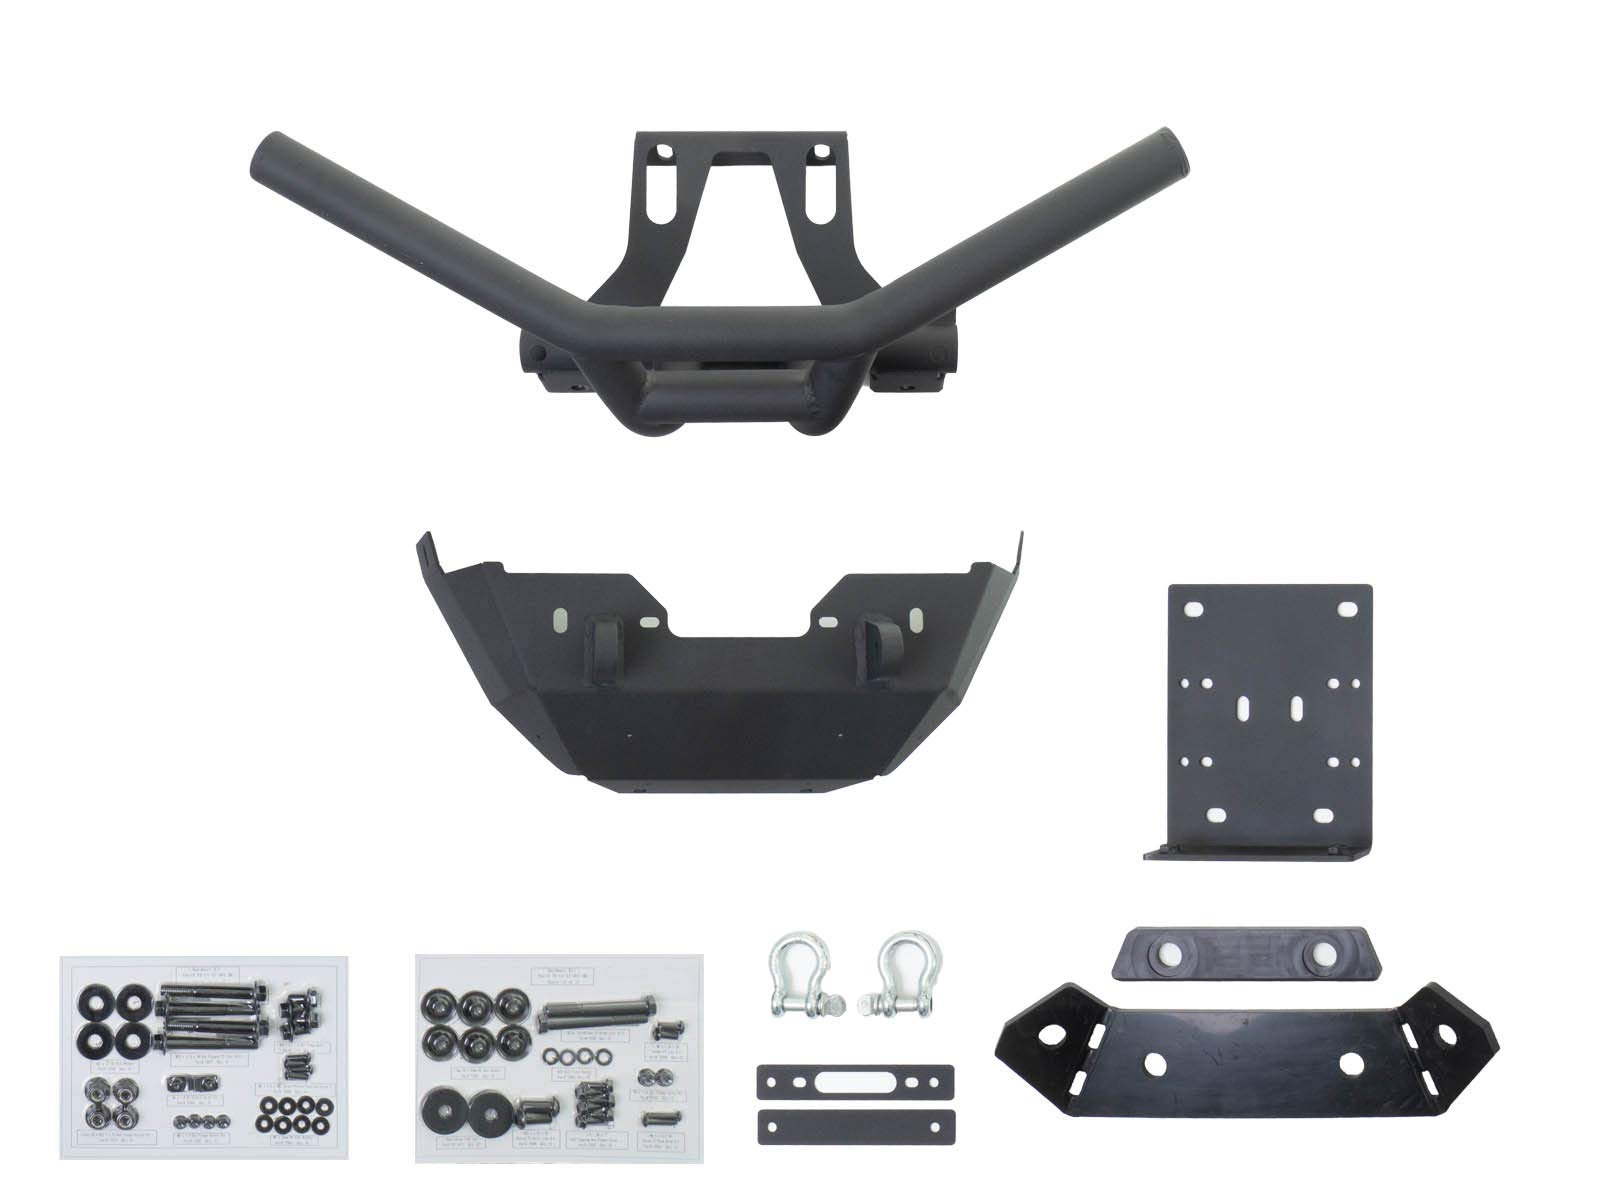 SuperATV Heavy Duty Winch Ready Front Bumper/Brush Guard for Can-Am Maverick X3 (2017+) - Black - SEE FITMENT BELOW